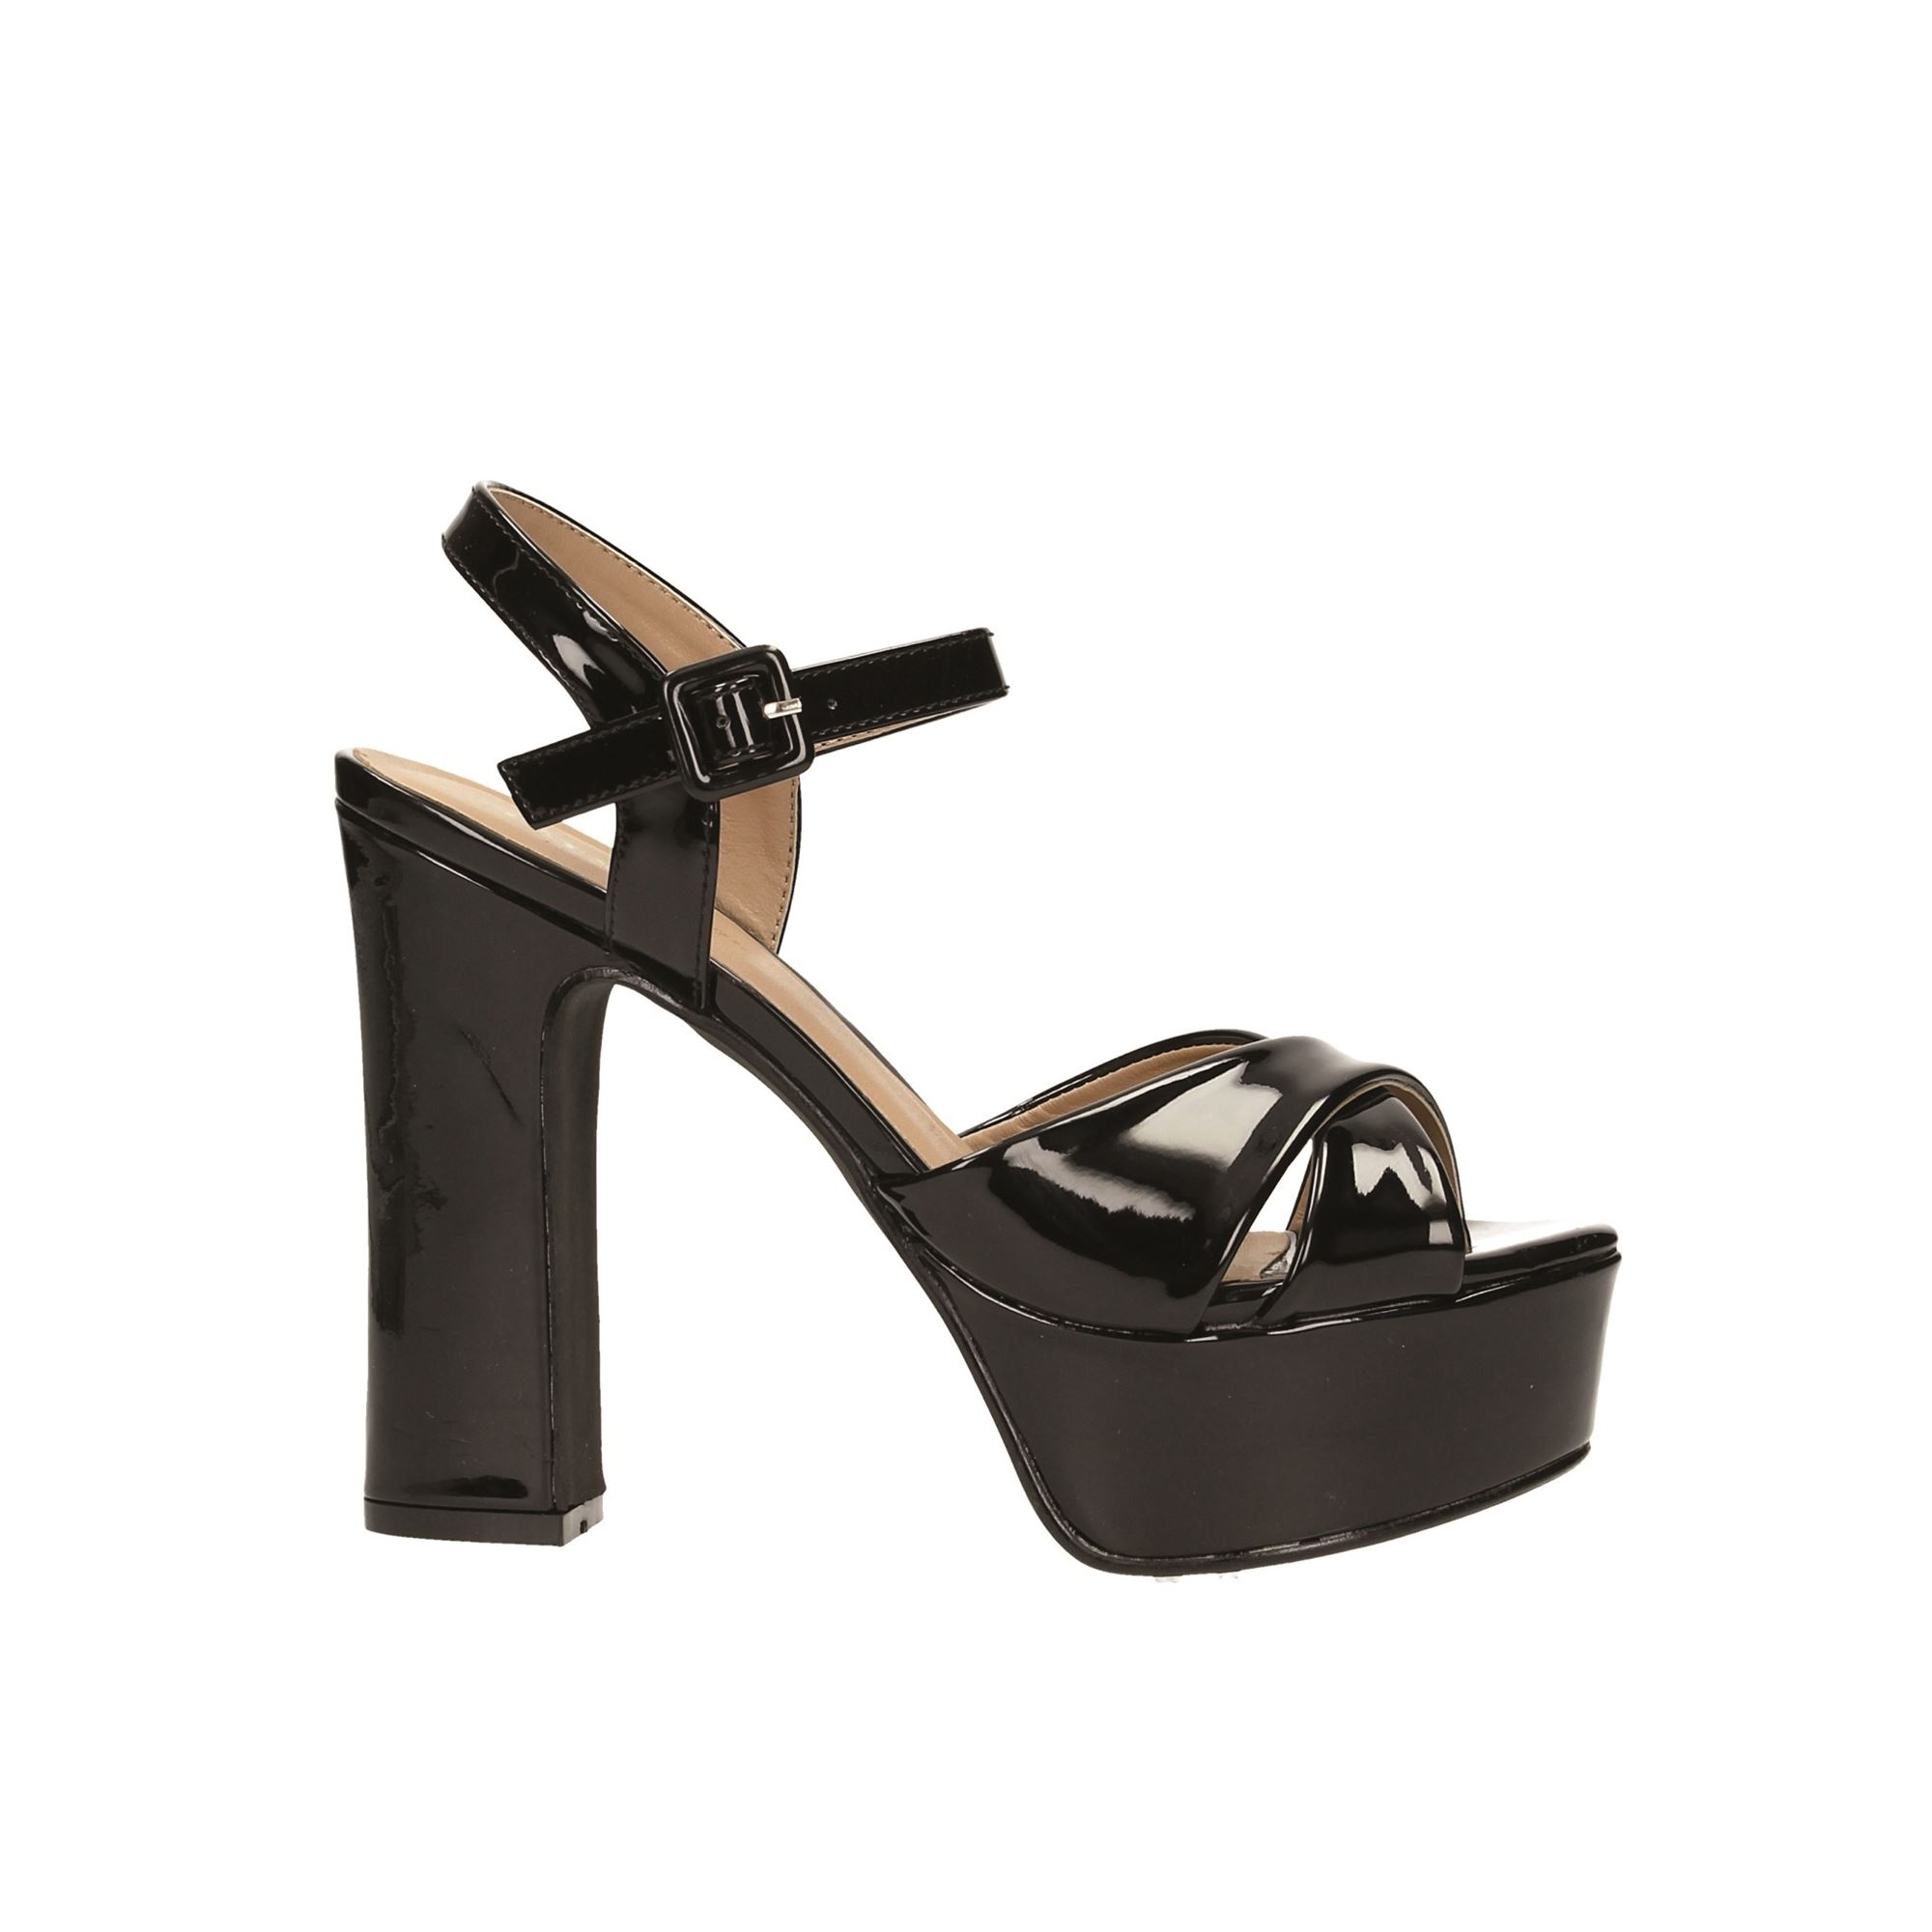 Tata Italia Shoes Woman Sandali Black BF5563-1